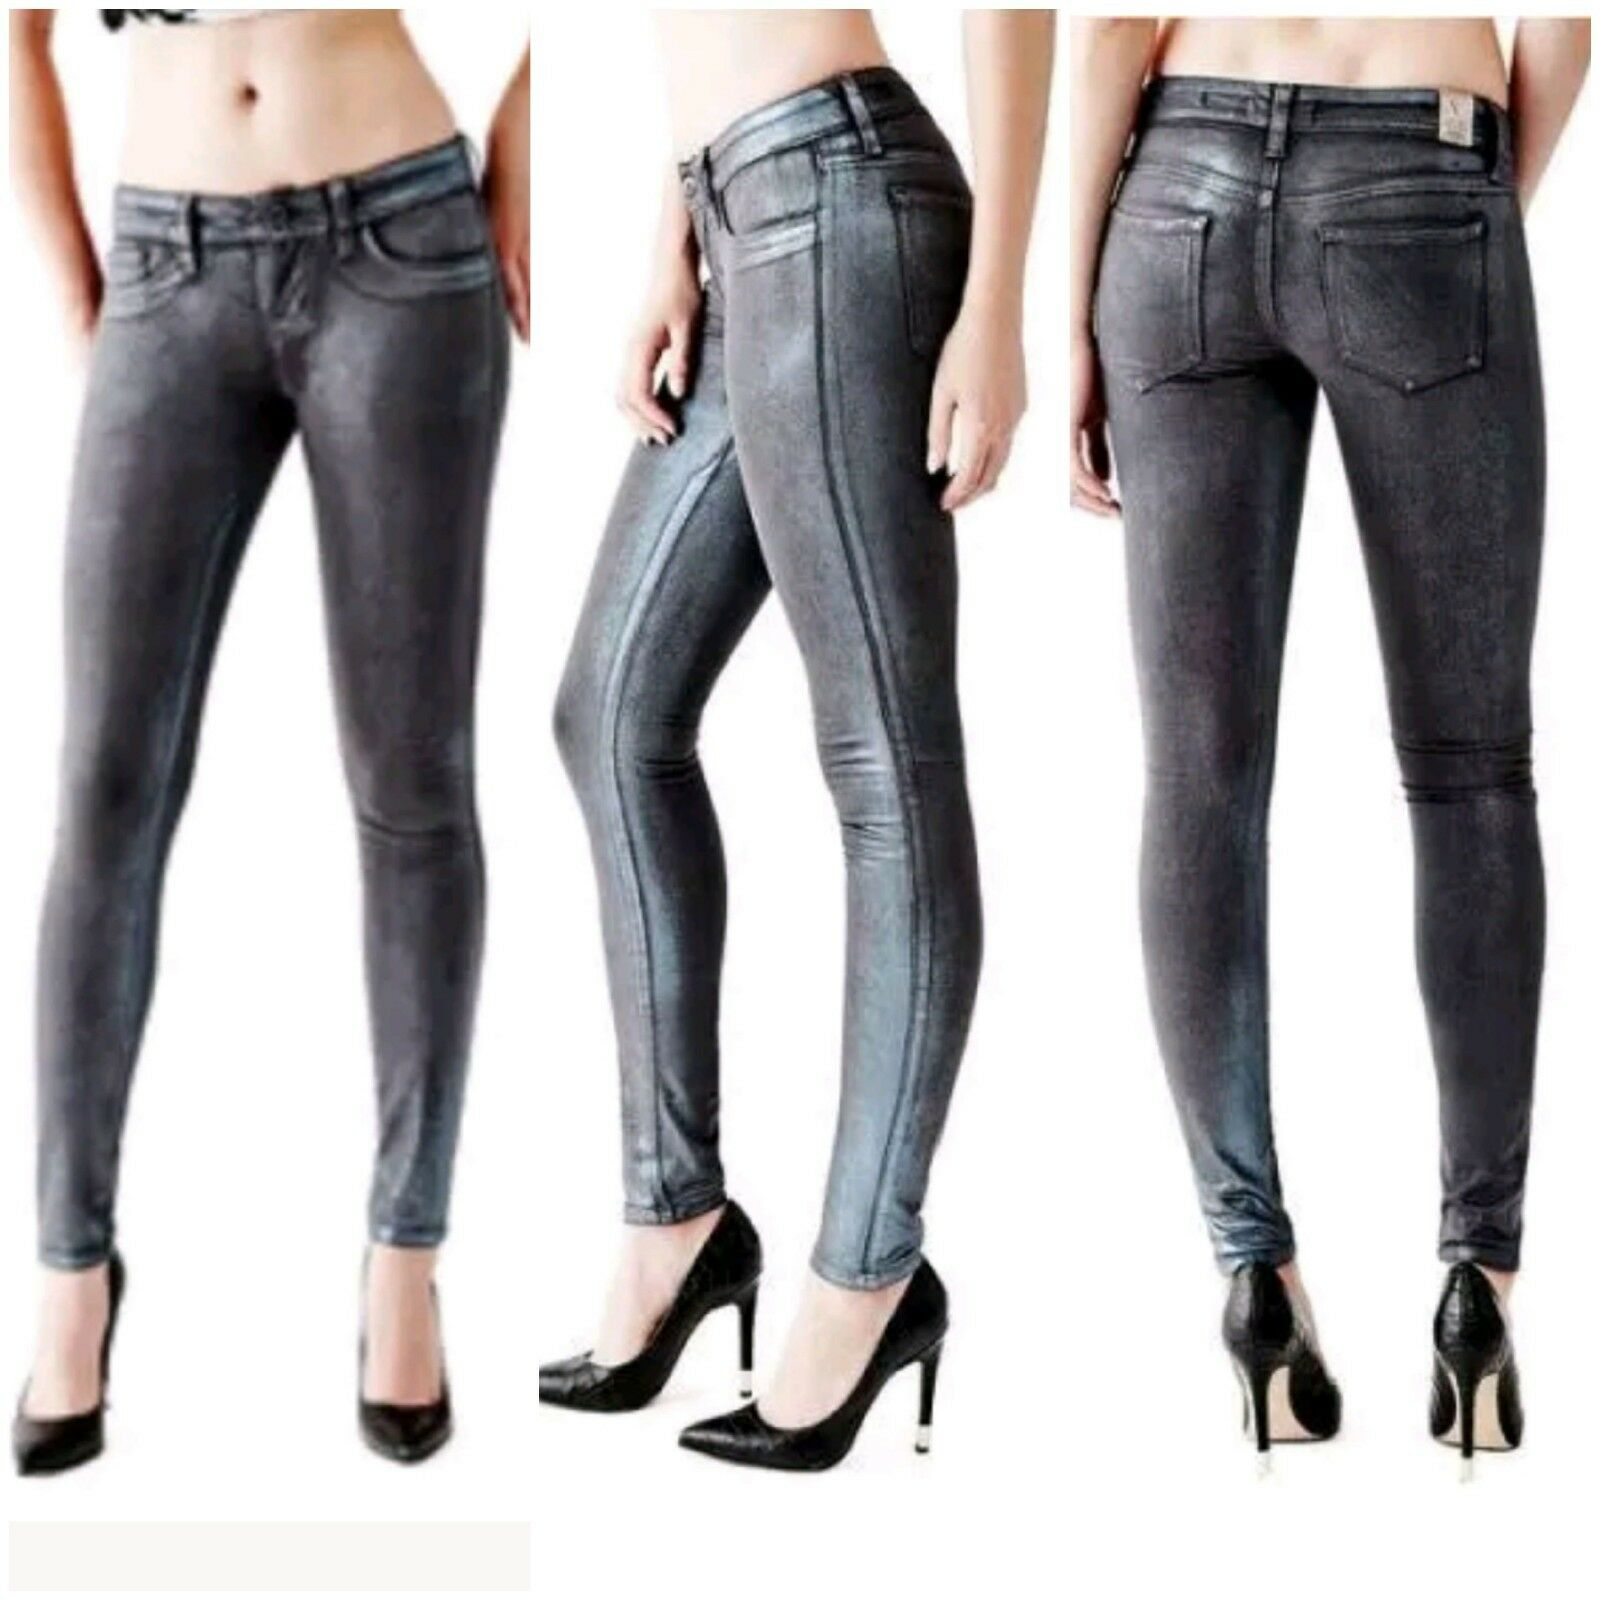 GUESS Low-Rise Metallic Power Skinny Jeans in Radiant Indigo Wash size 24